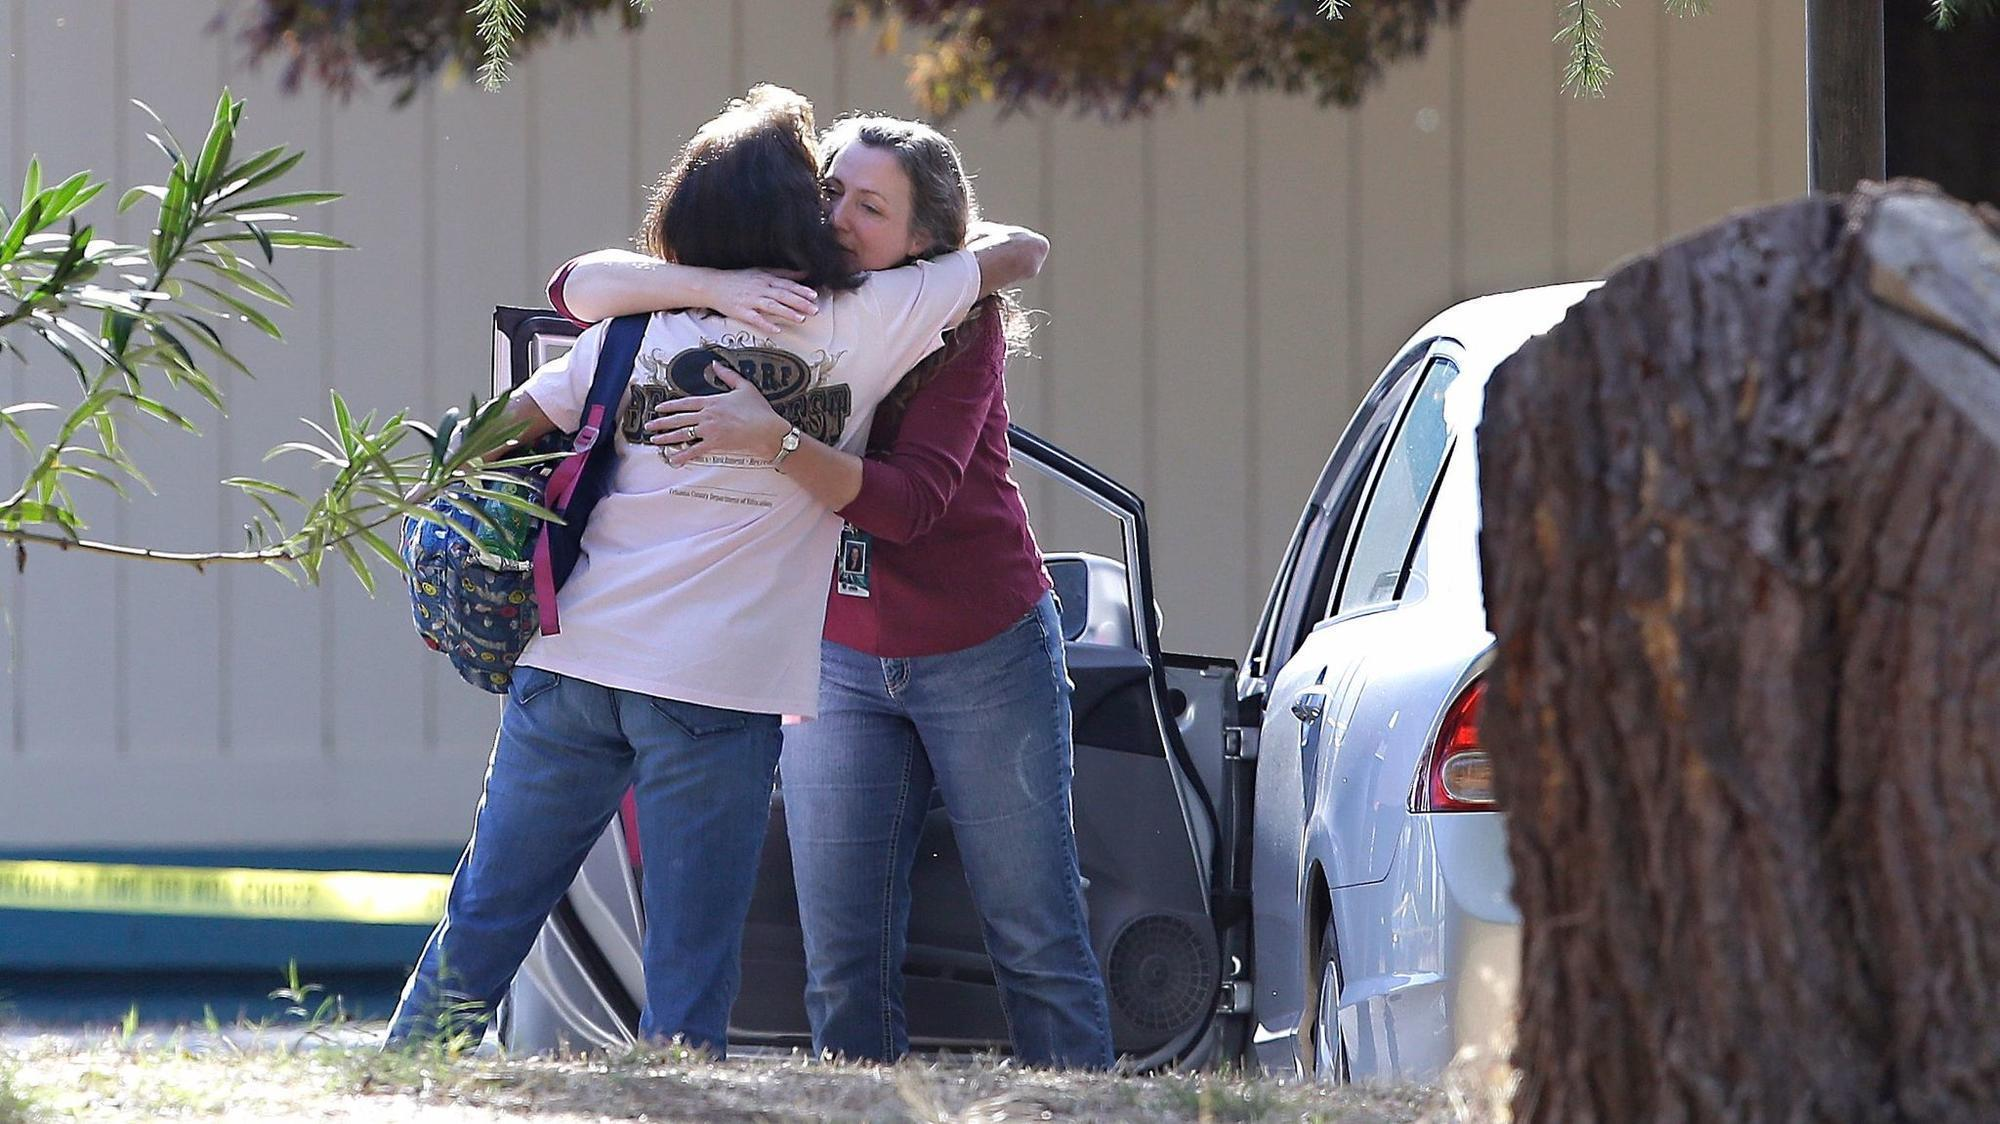 5 dead, including 3 at an elementary school, in shooting in Sacramento, CA